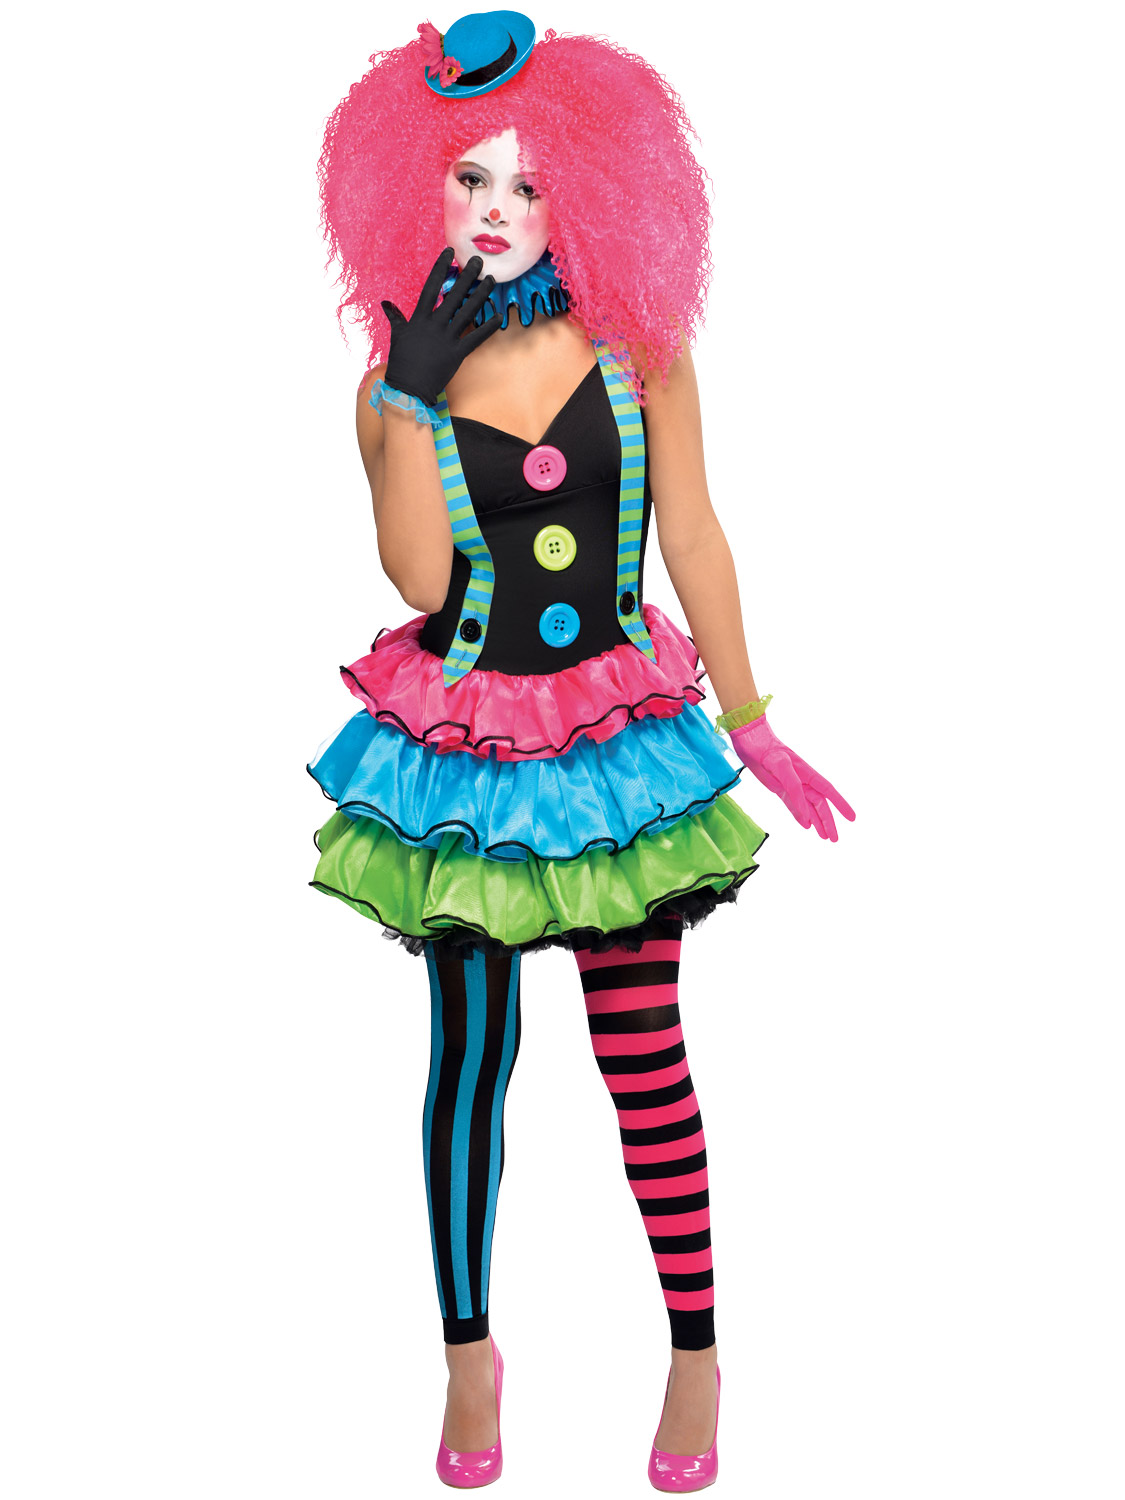 Details about Ladies Clown Costume Adults Cool Halloween Fancy Dress Womens  Circus Outfit b9a6e3297